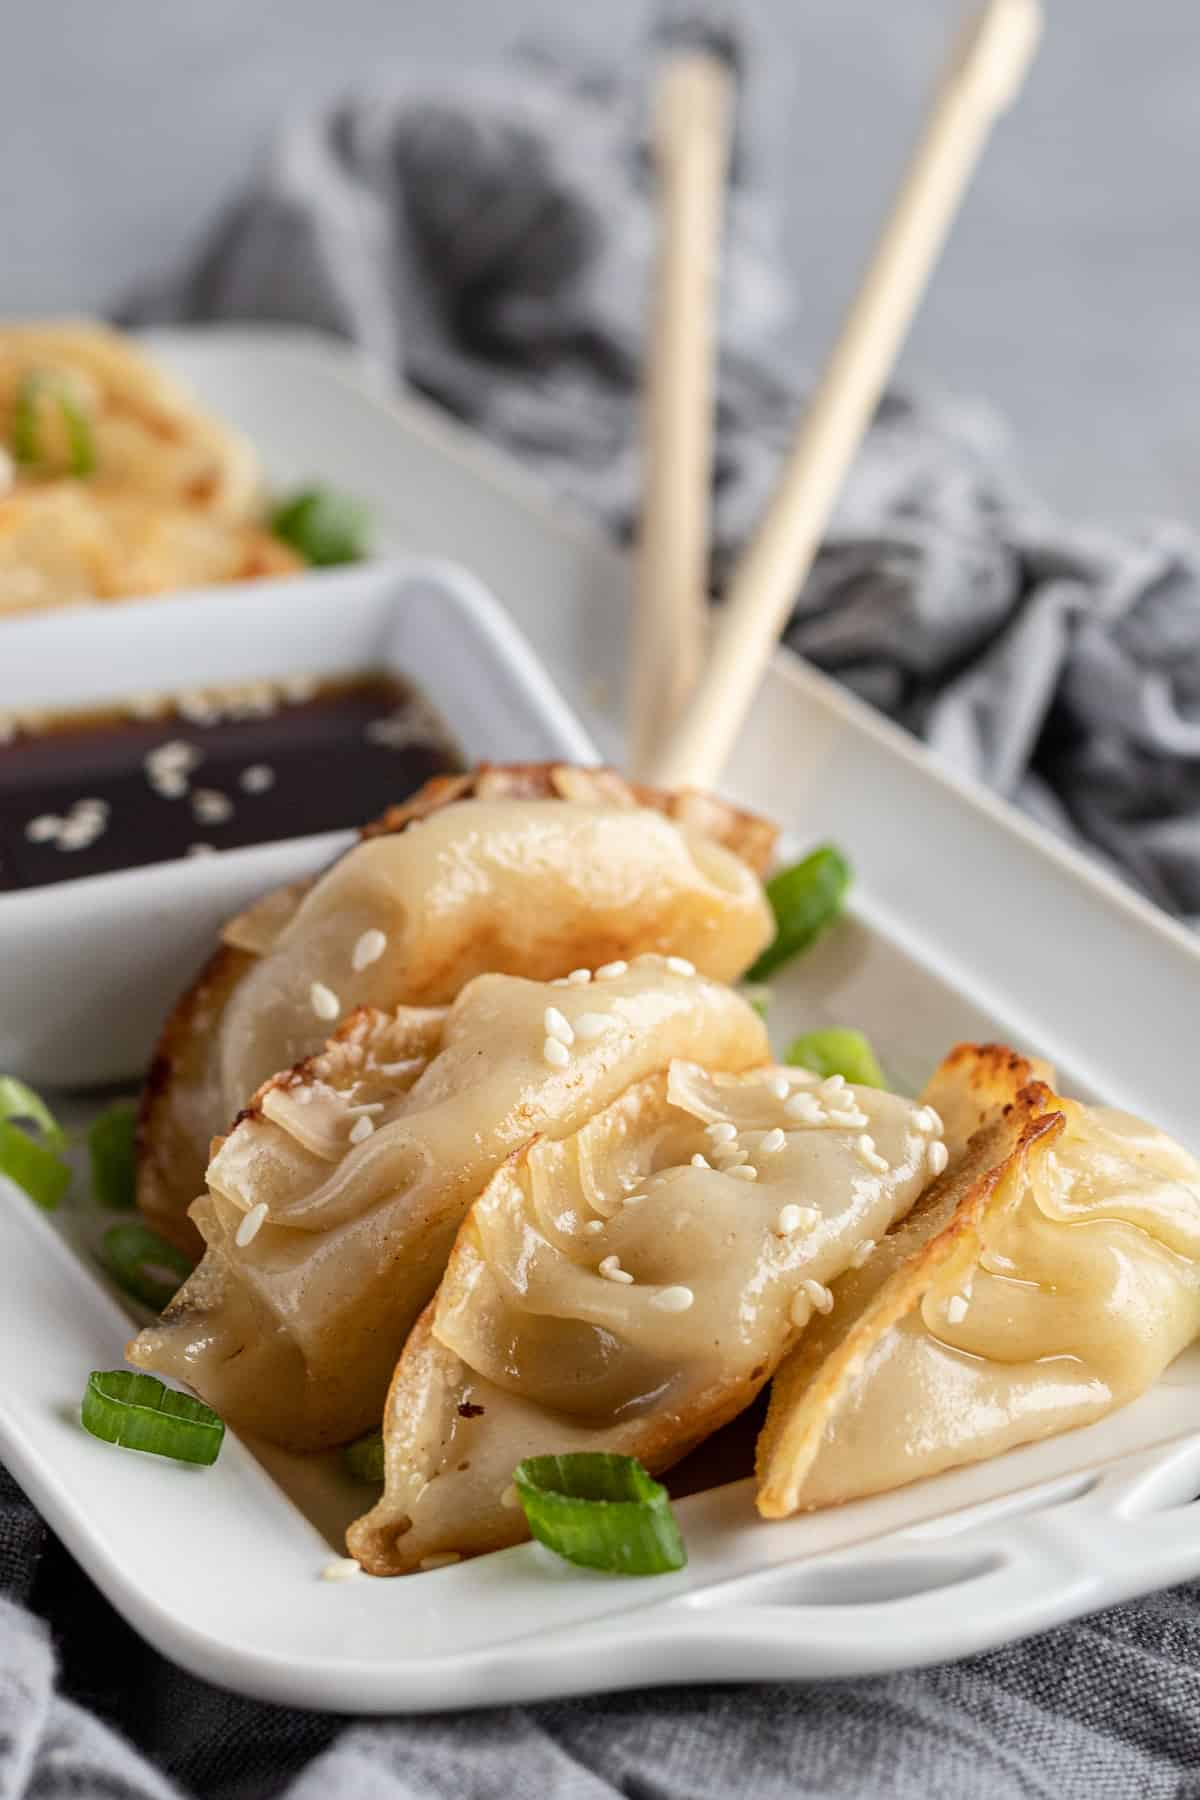 Four Chicken Potstickers on a Serving Platter with Two Chopsticks in the Background